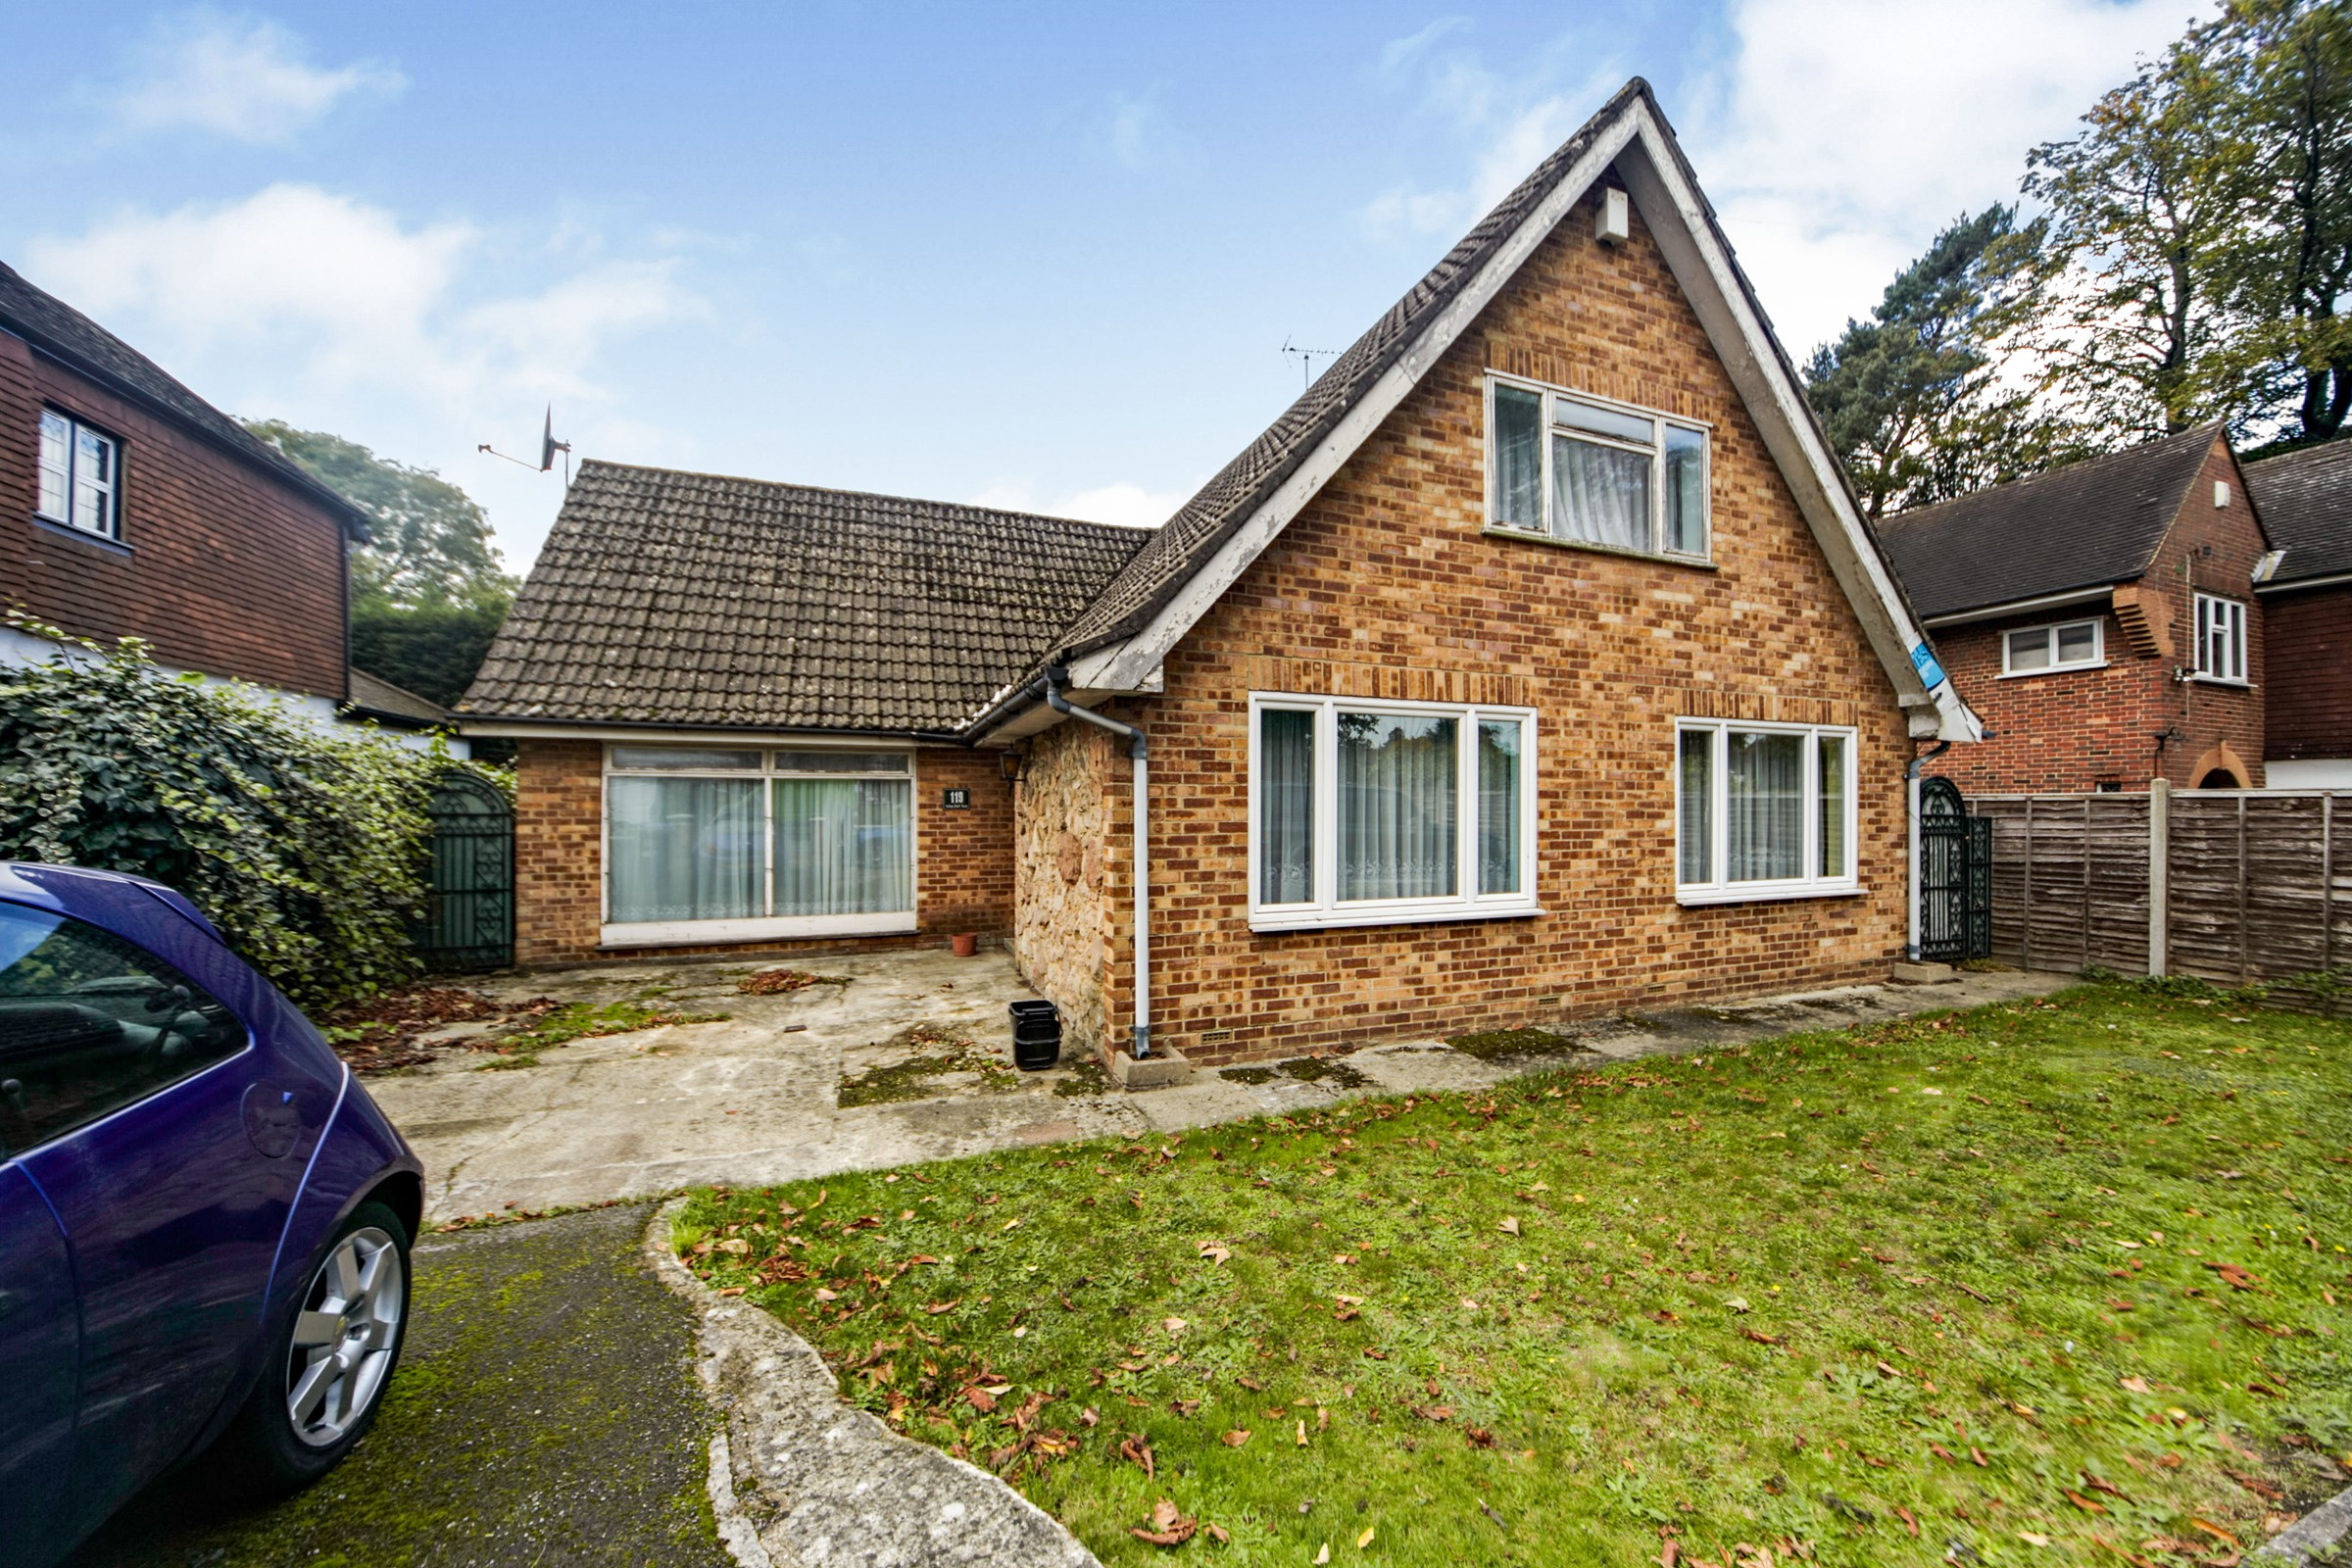 Haling Park Road, South Croydon, Surrey, ., CR2